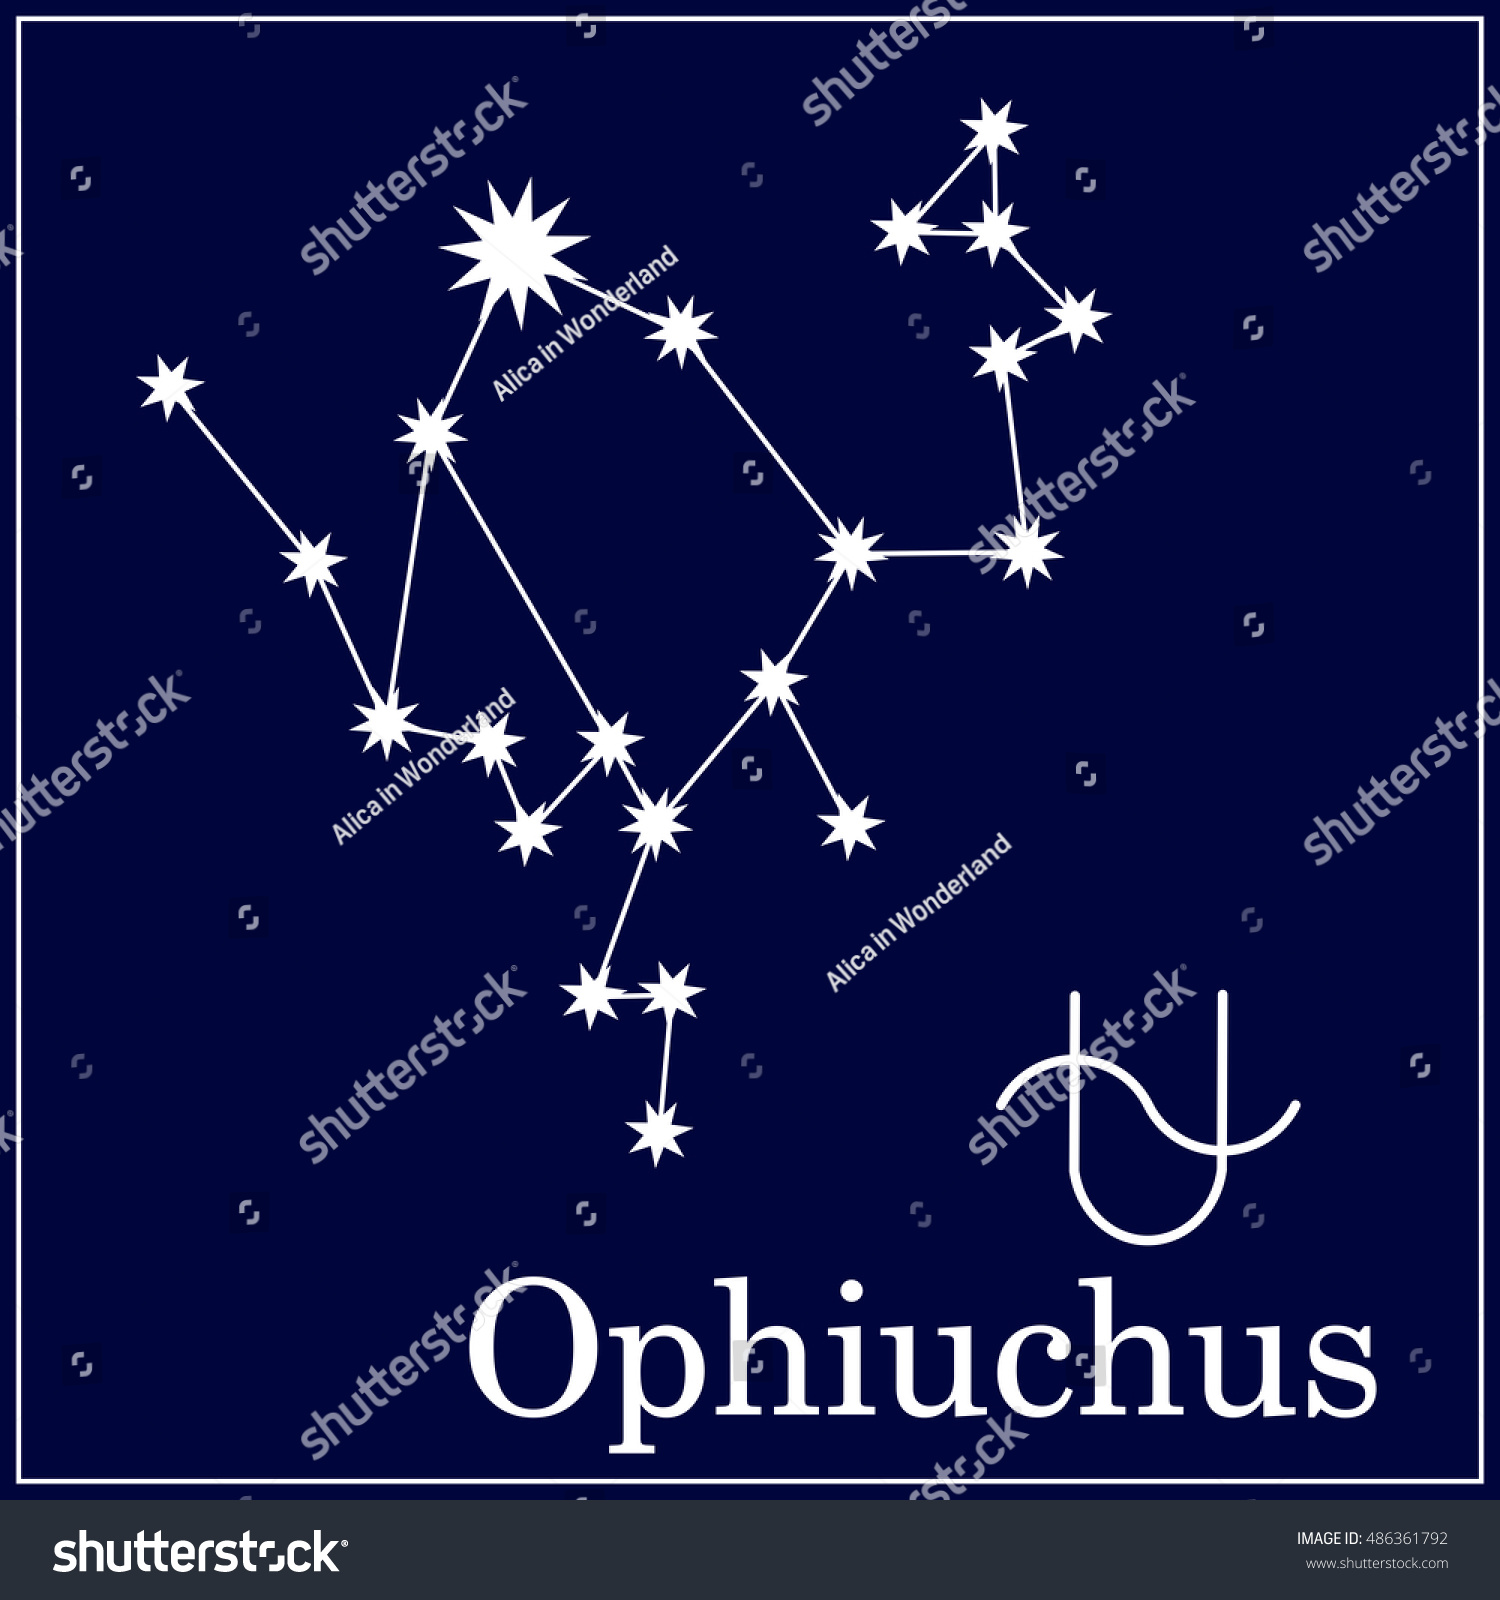 Astronomical constellation astrological zodiac symbol new stock astronomical constellation and astrological zodiac symbol new thirteenth zodiac sign ophiuchus zodiac sign buycottarizona Images